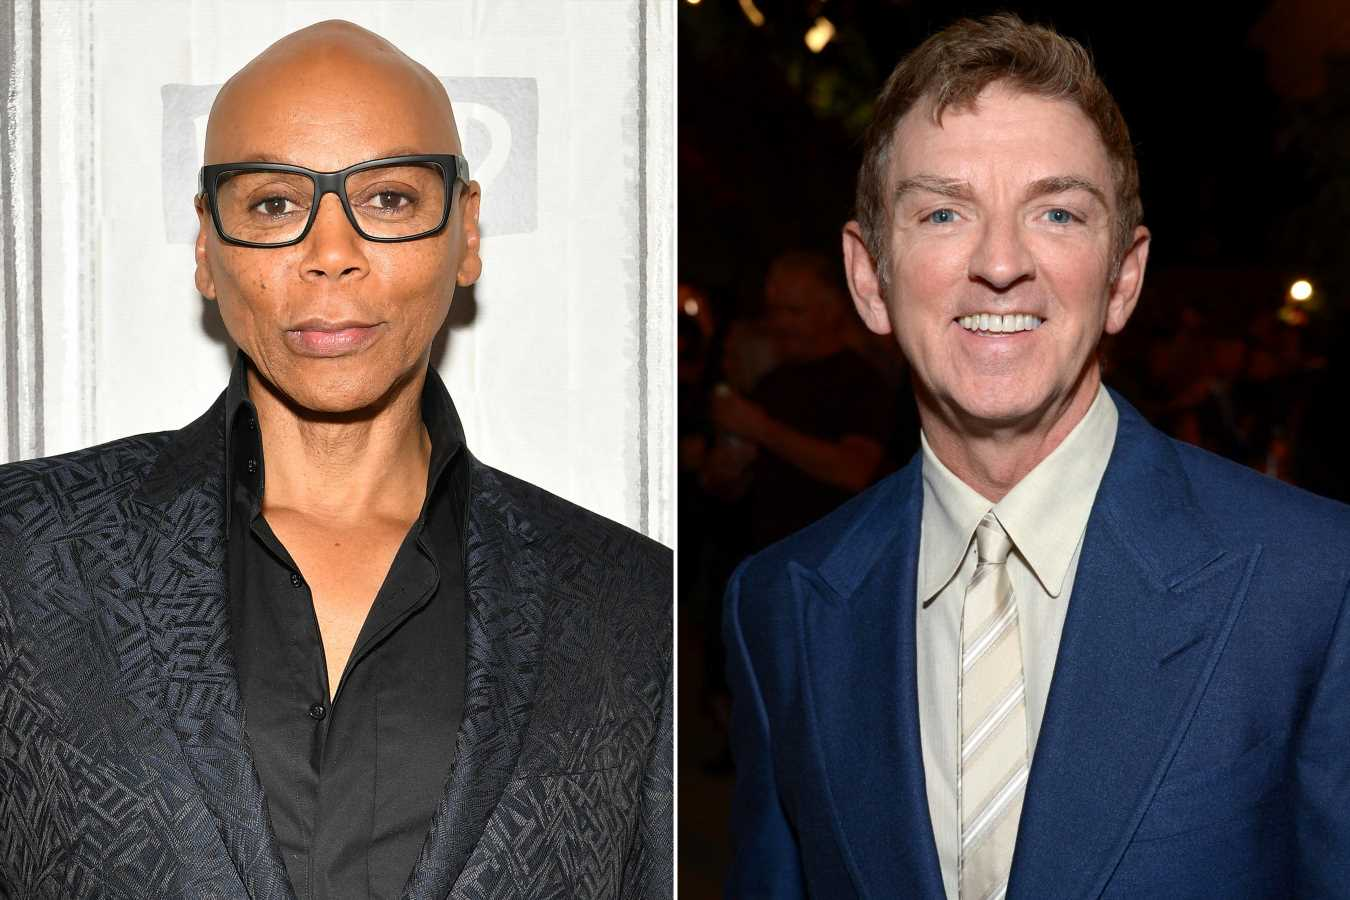 RuPaul talks AJ and the Queen Netflix series with Judge Judy